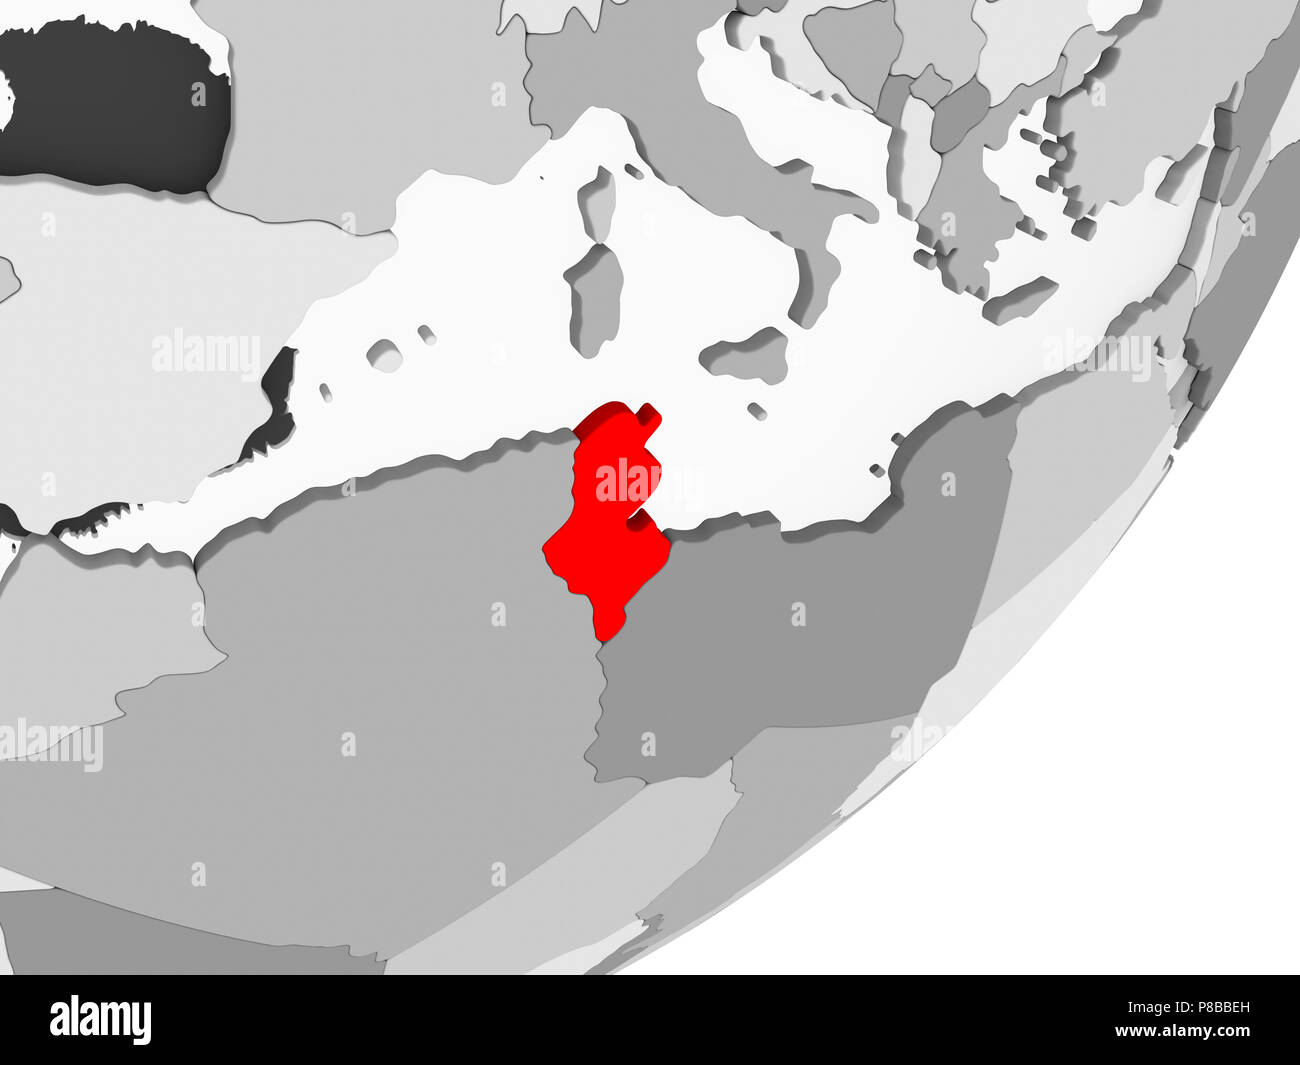 Picture of: Illustration Of Tunisia Highlighted In Red On Grey Globe With Transparent Oceans 3d Illustration Stock Photo Alamy